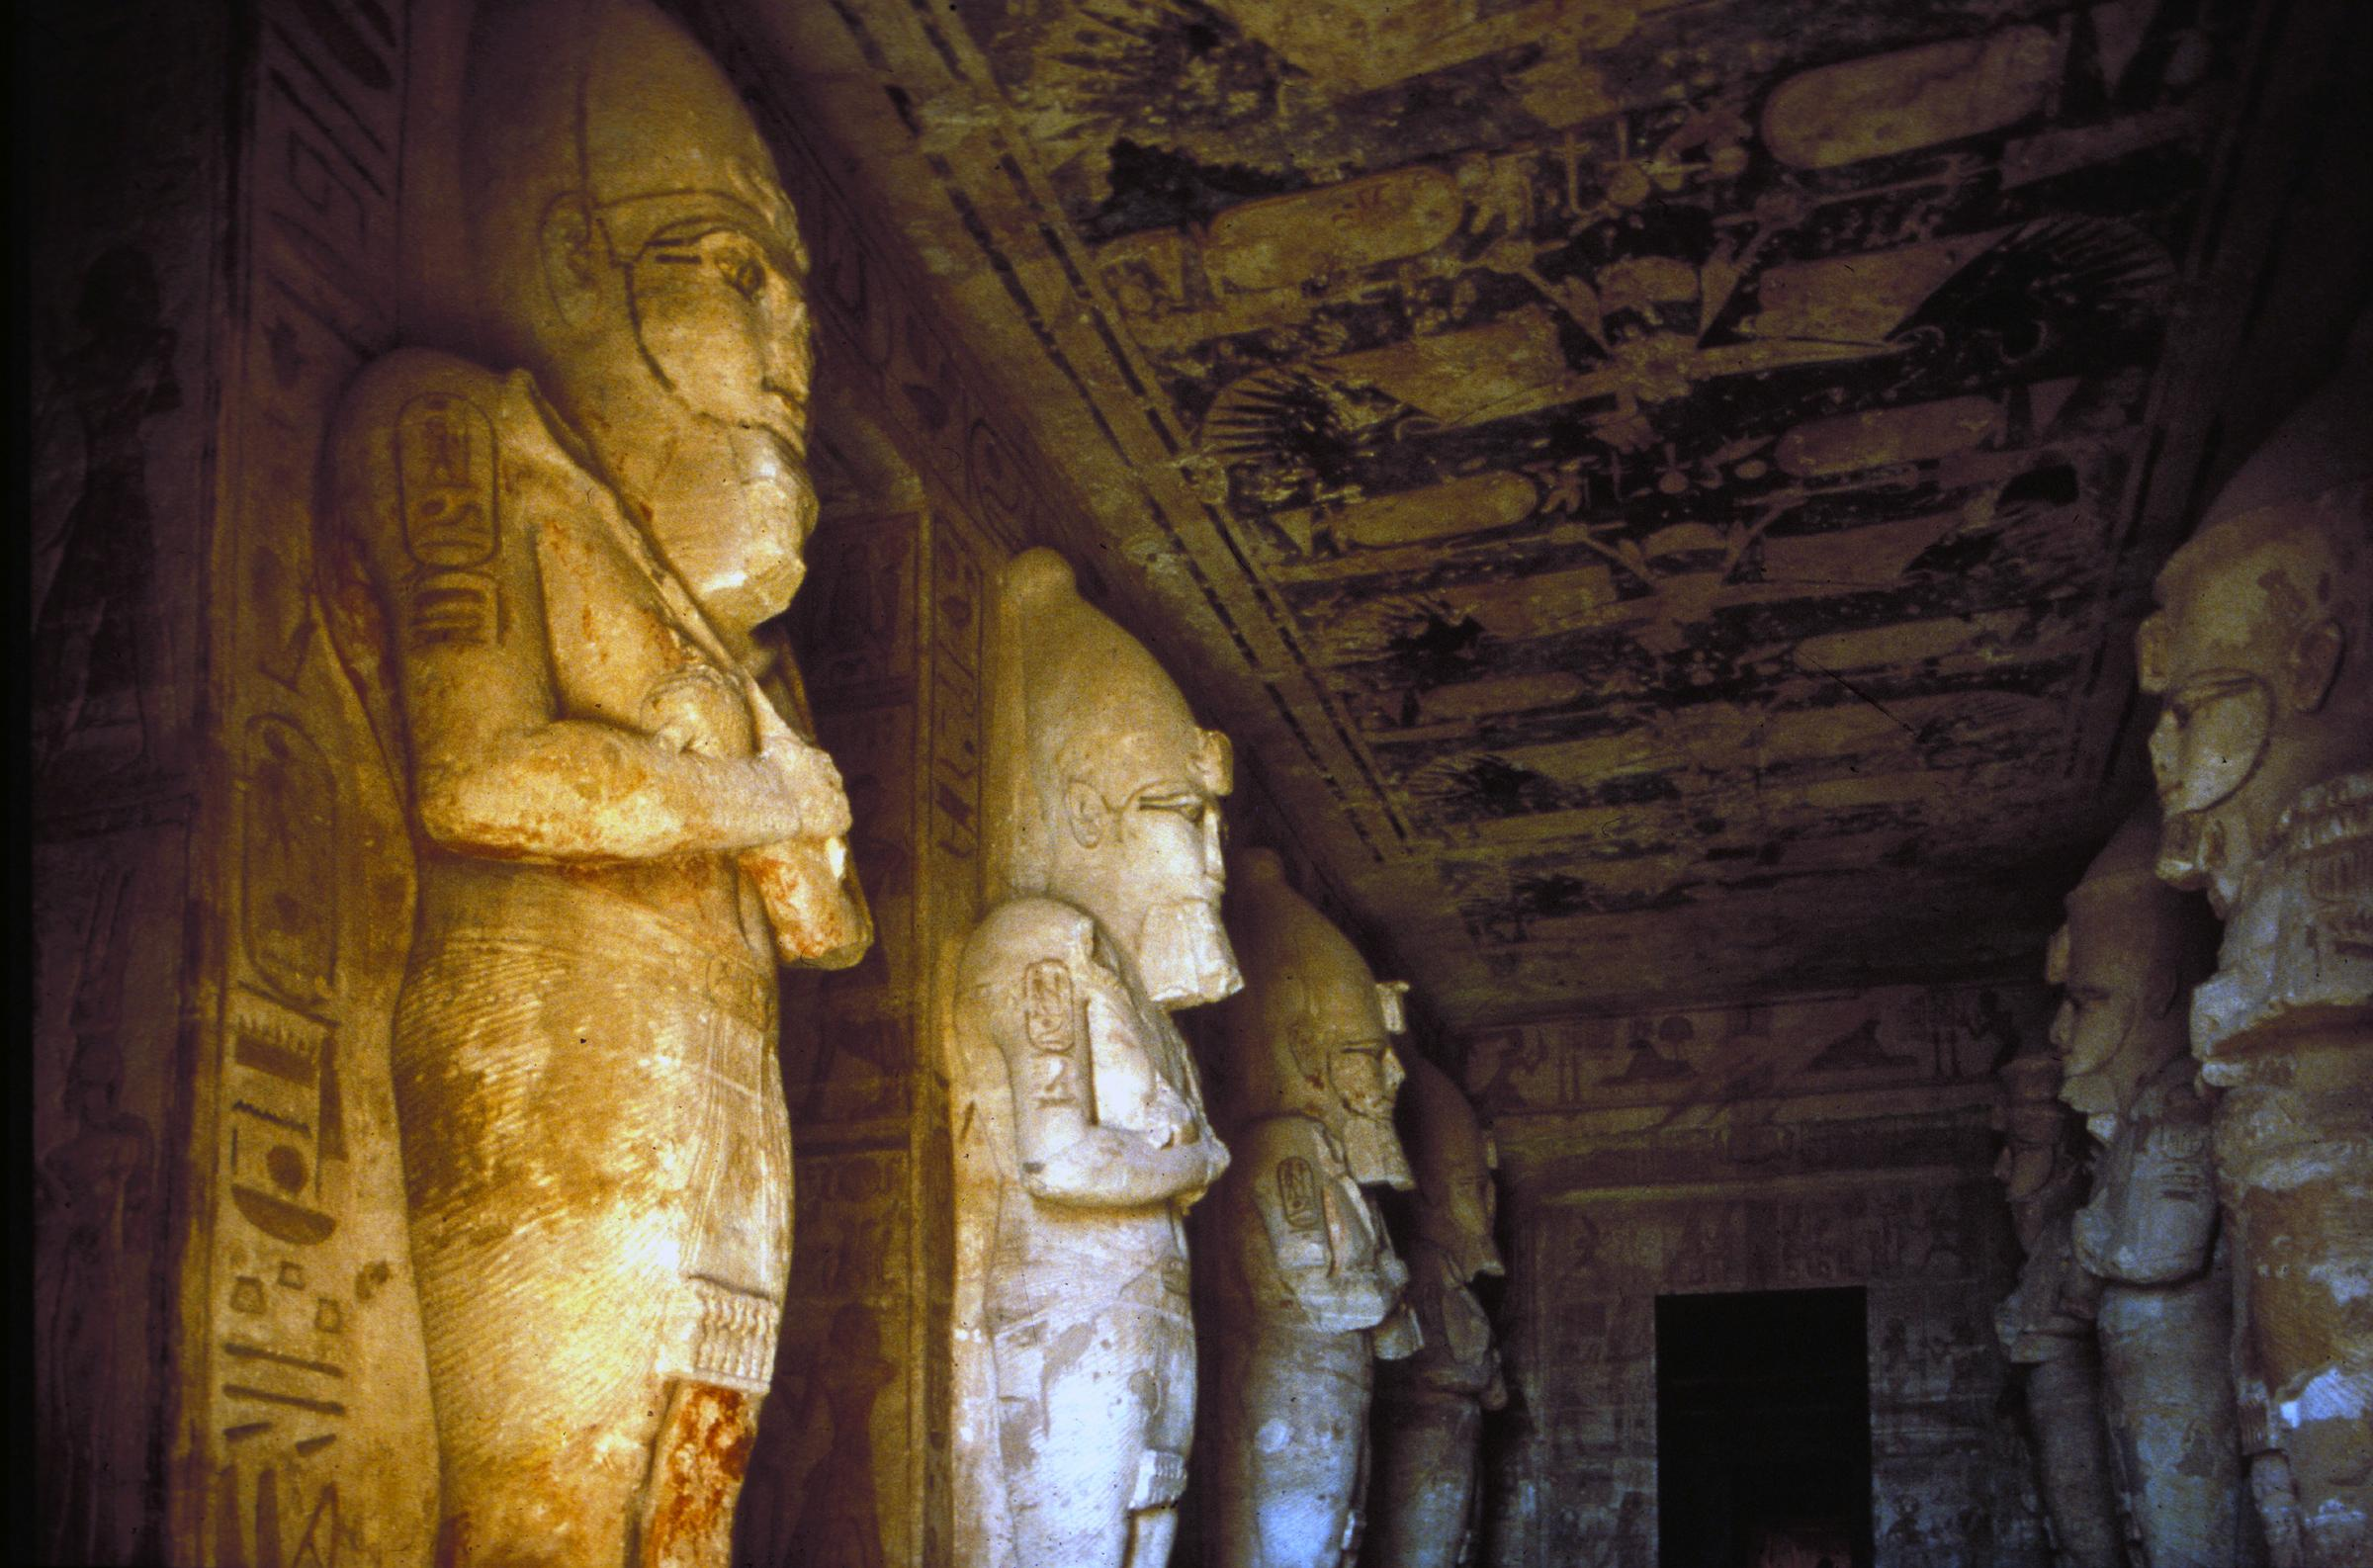 Abu Simbel, Nubia, Egypt, Interrior of Temple of Ramses II